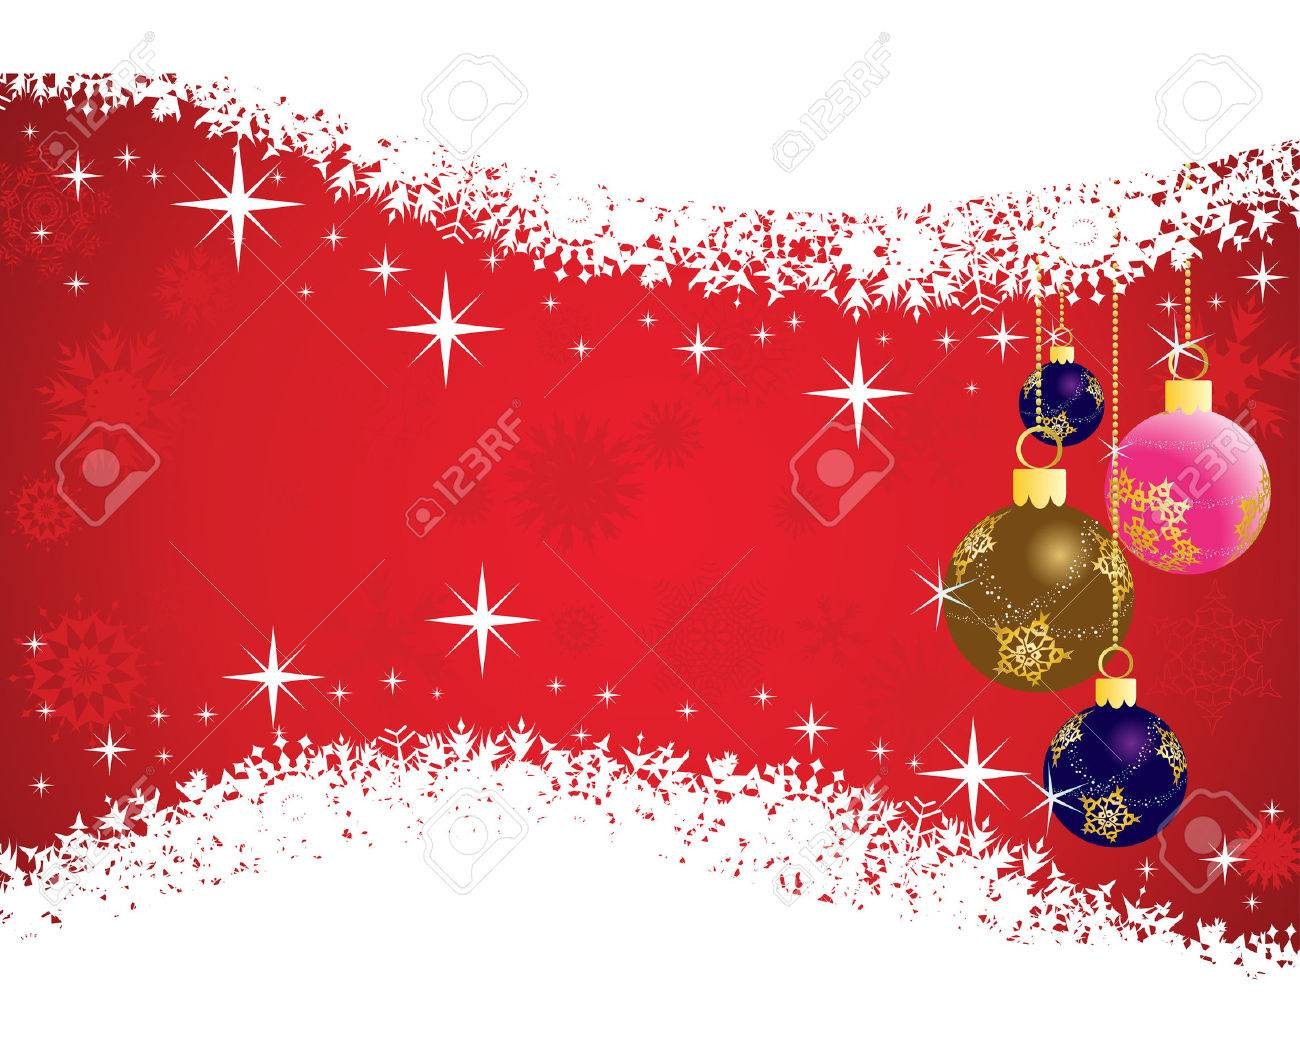 Beautiful vector christmas new year background for design use - Beautiful Vector Christmas New Year Background For Design Use Stock Vector 5669438